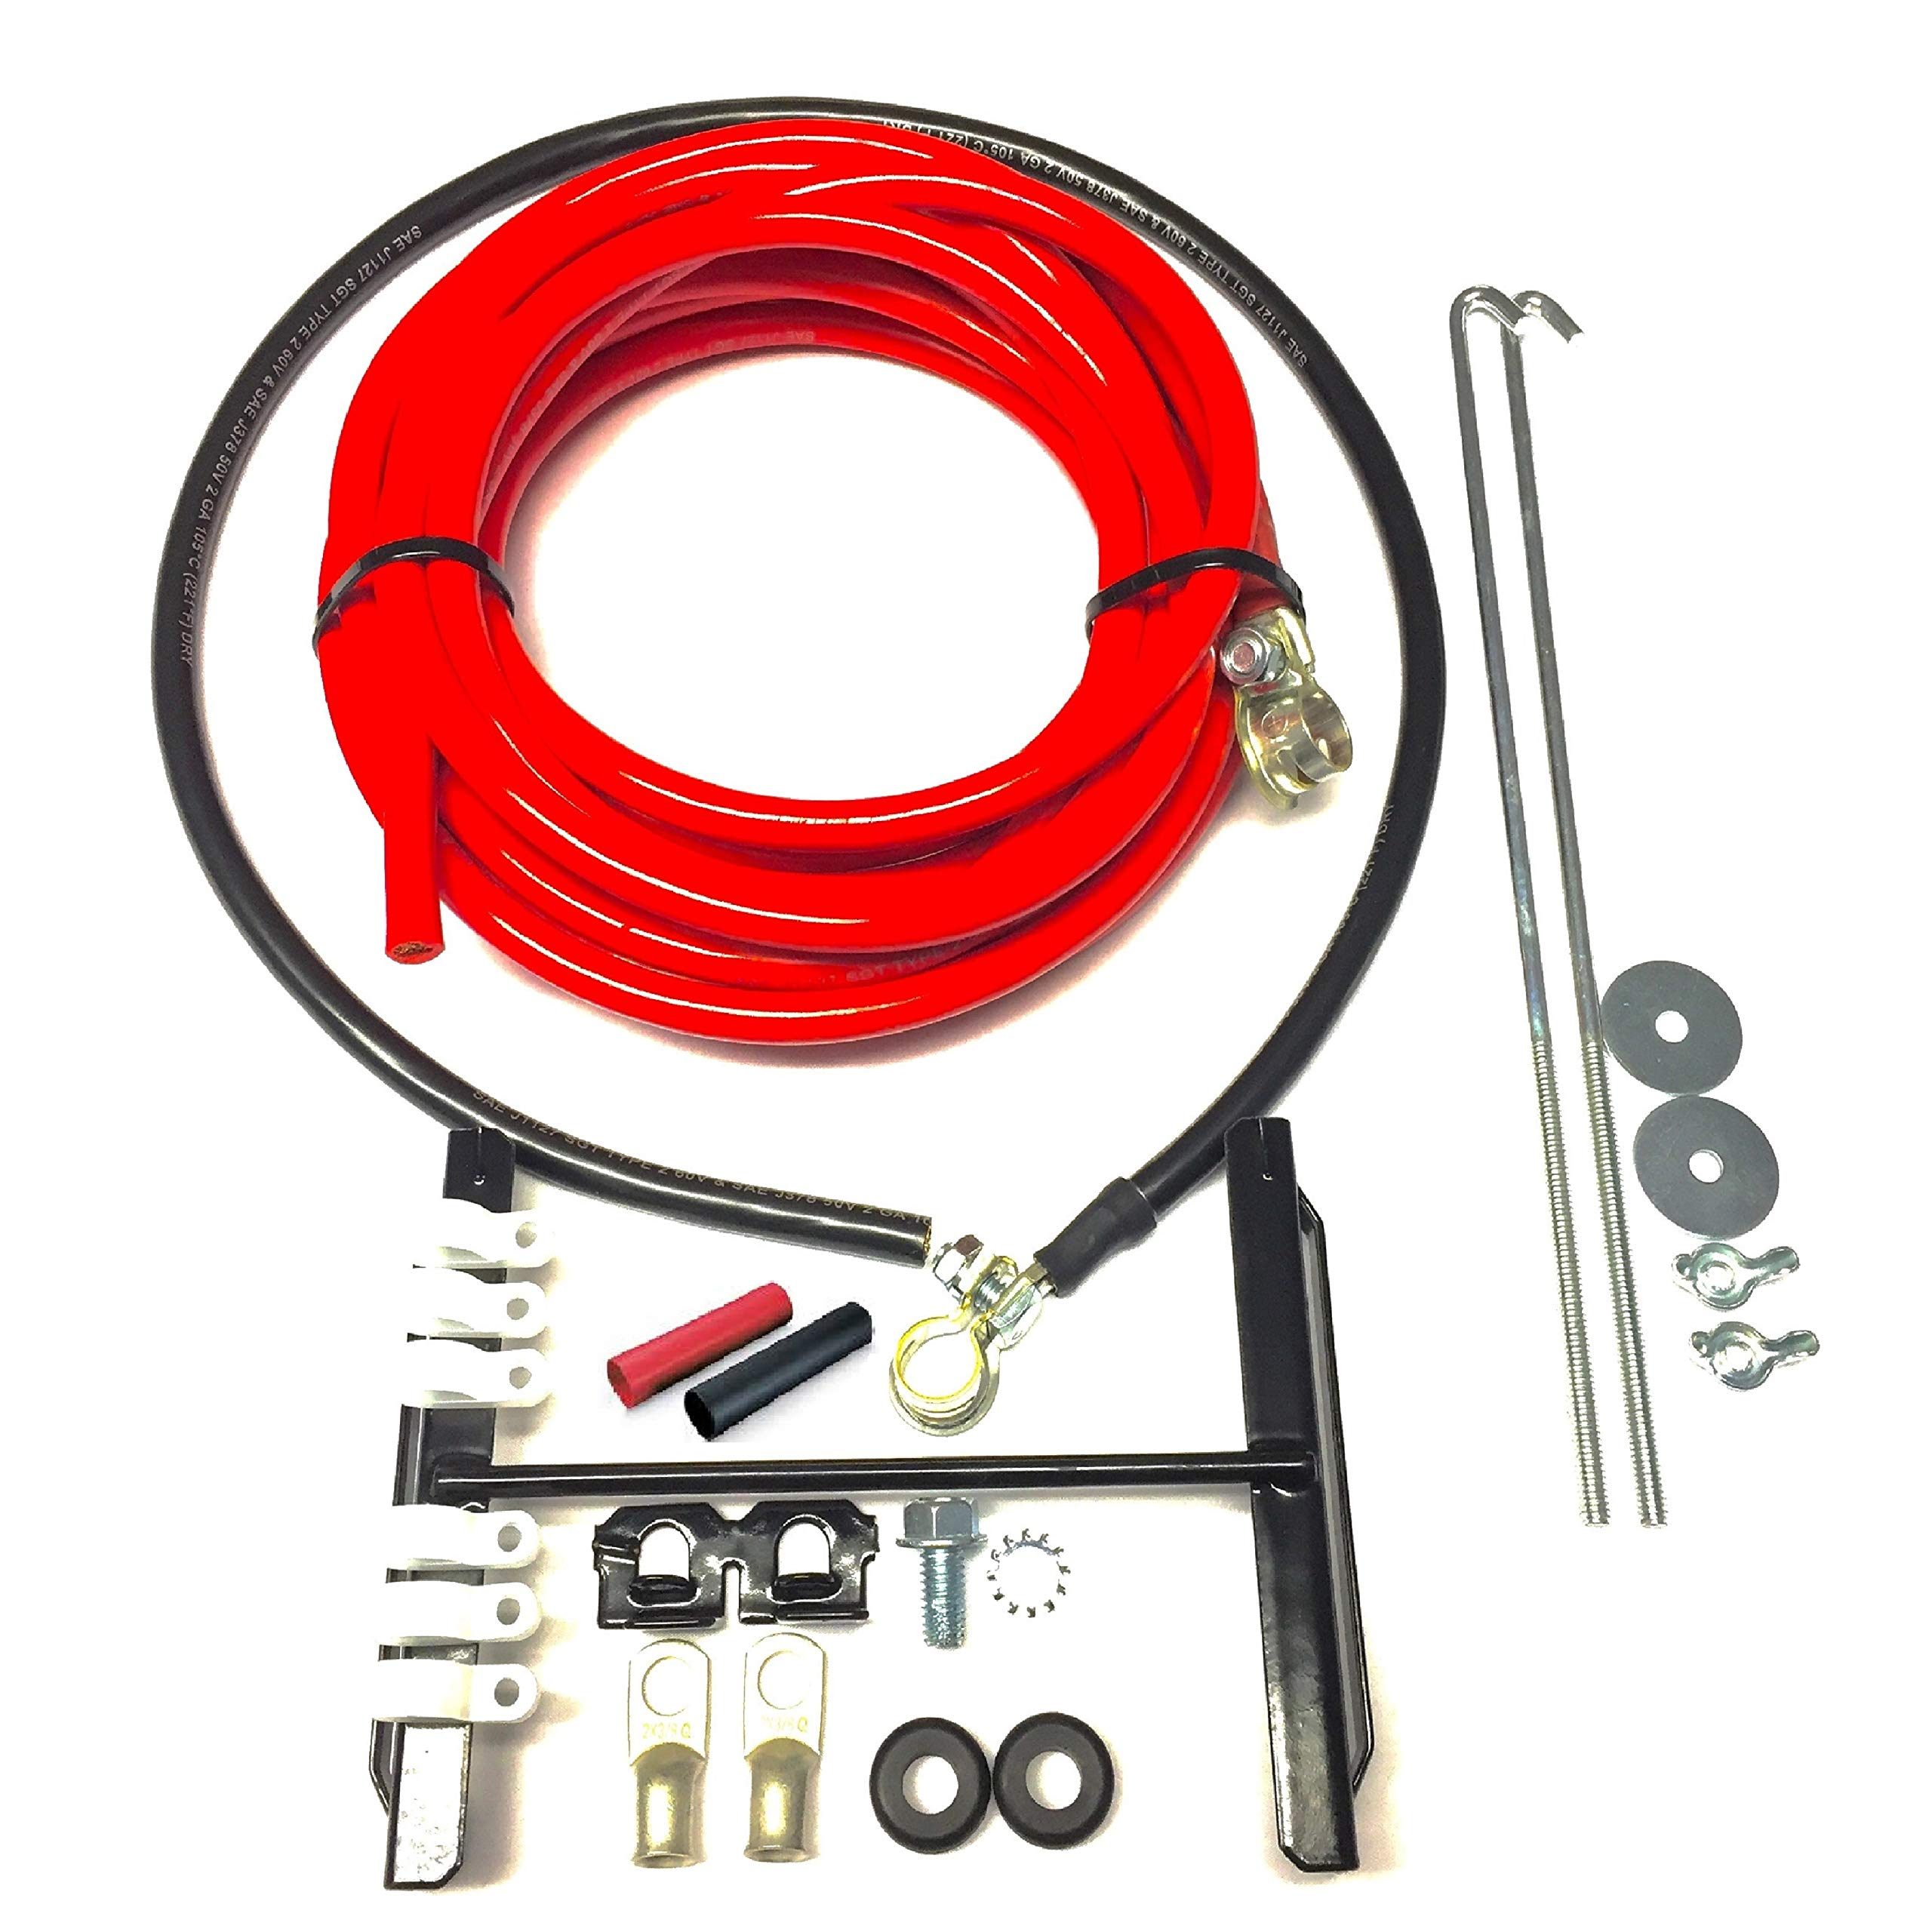 UPP- PROSTREET BATTERY RELOCATION KIT For Automotive/Marine With 20 ft of 2-Gauge Red and 3 ft of 2-Gauge Black Battery Cable/Includes Installation Kit by United Performance Products